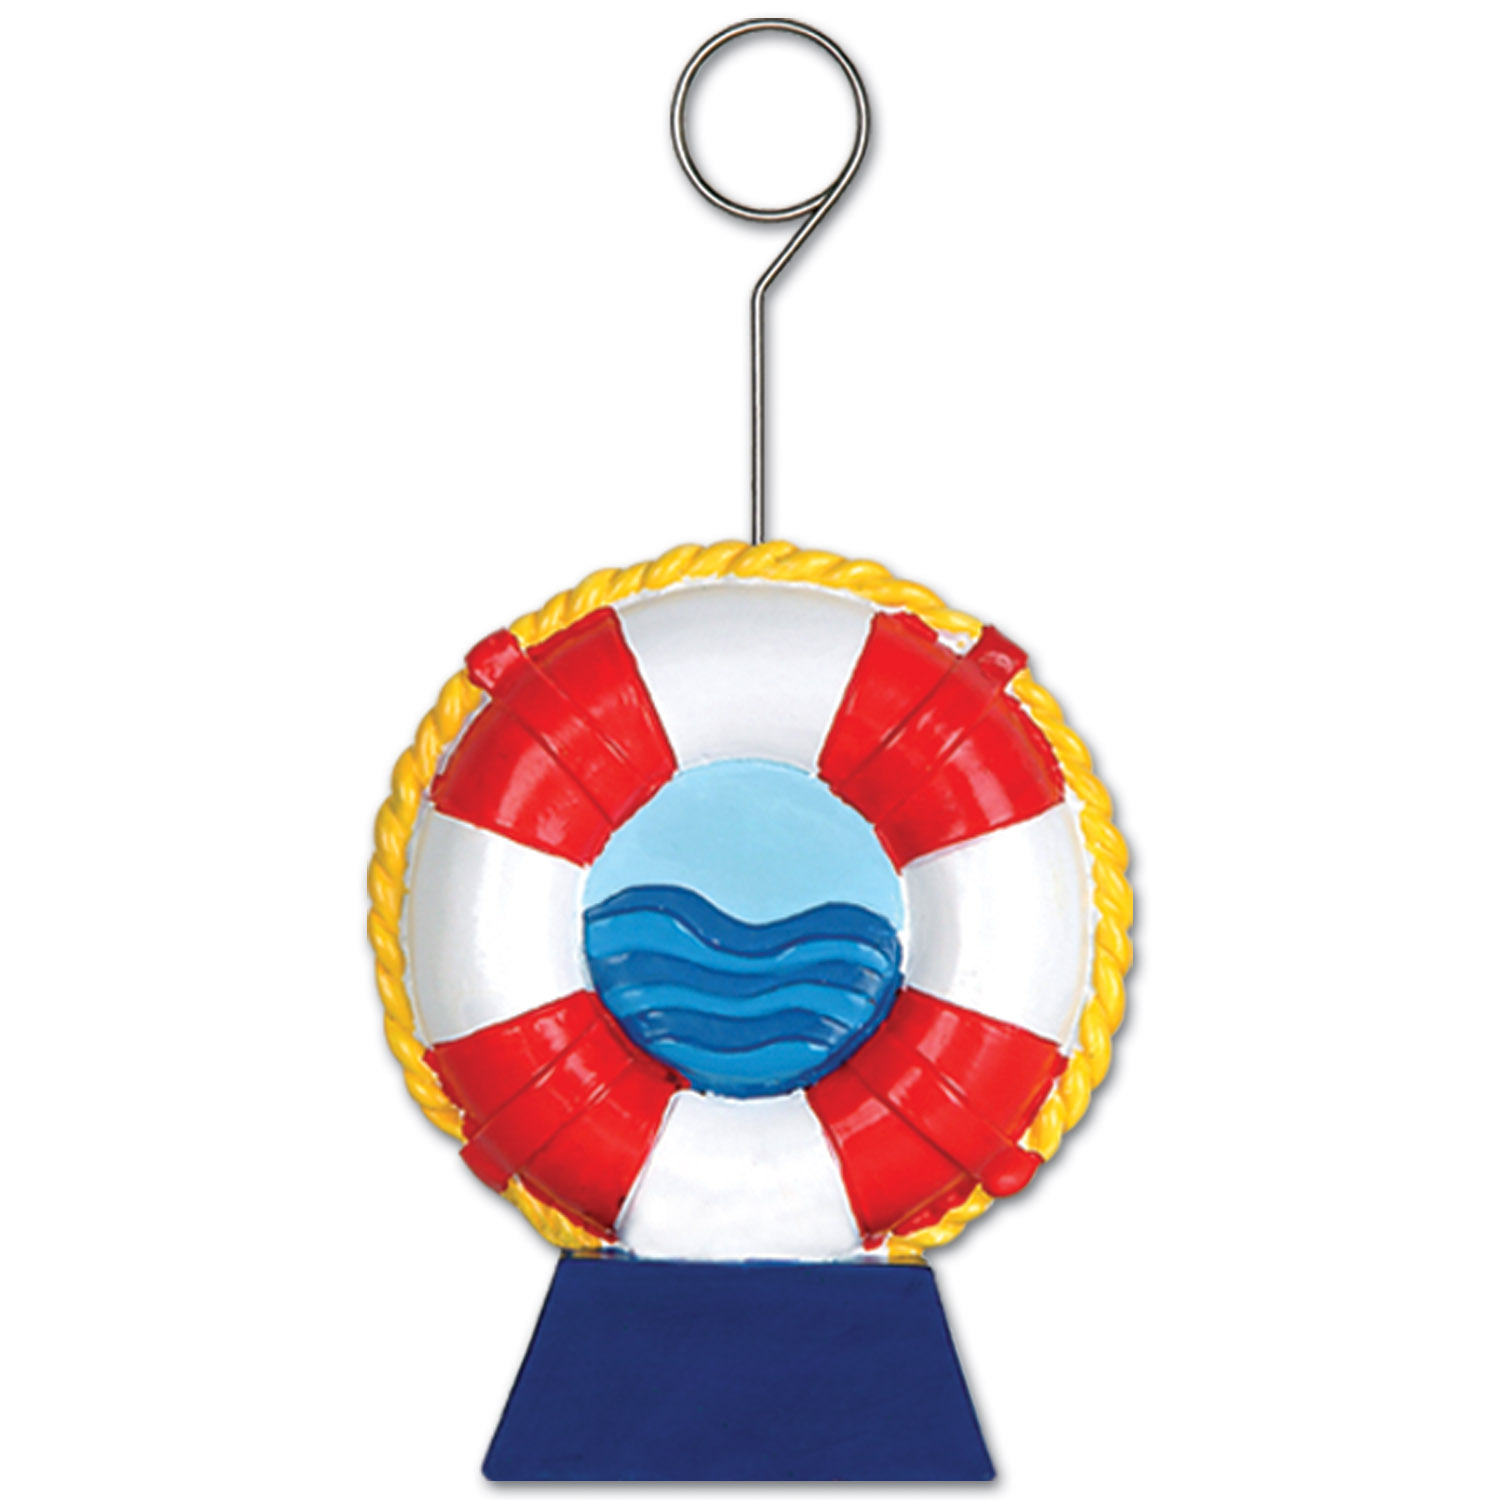 6oz Life Preserver Photo/Balloon Holder (Pack of 6) Life preserver, Nautical, Commodores Ball, Water, Lake, Ocean, Fishing, Centerpieces, Balloon Holders, Photo Holders, Decorative, Wholesale party supplies, Inexpensive party decorations, Cheap, Bulk